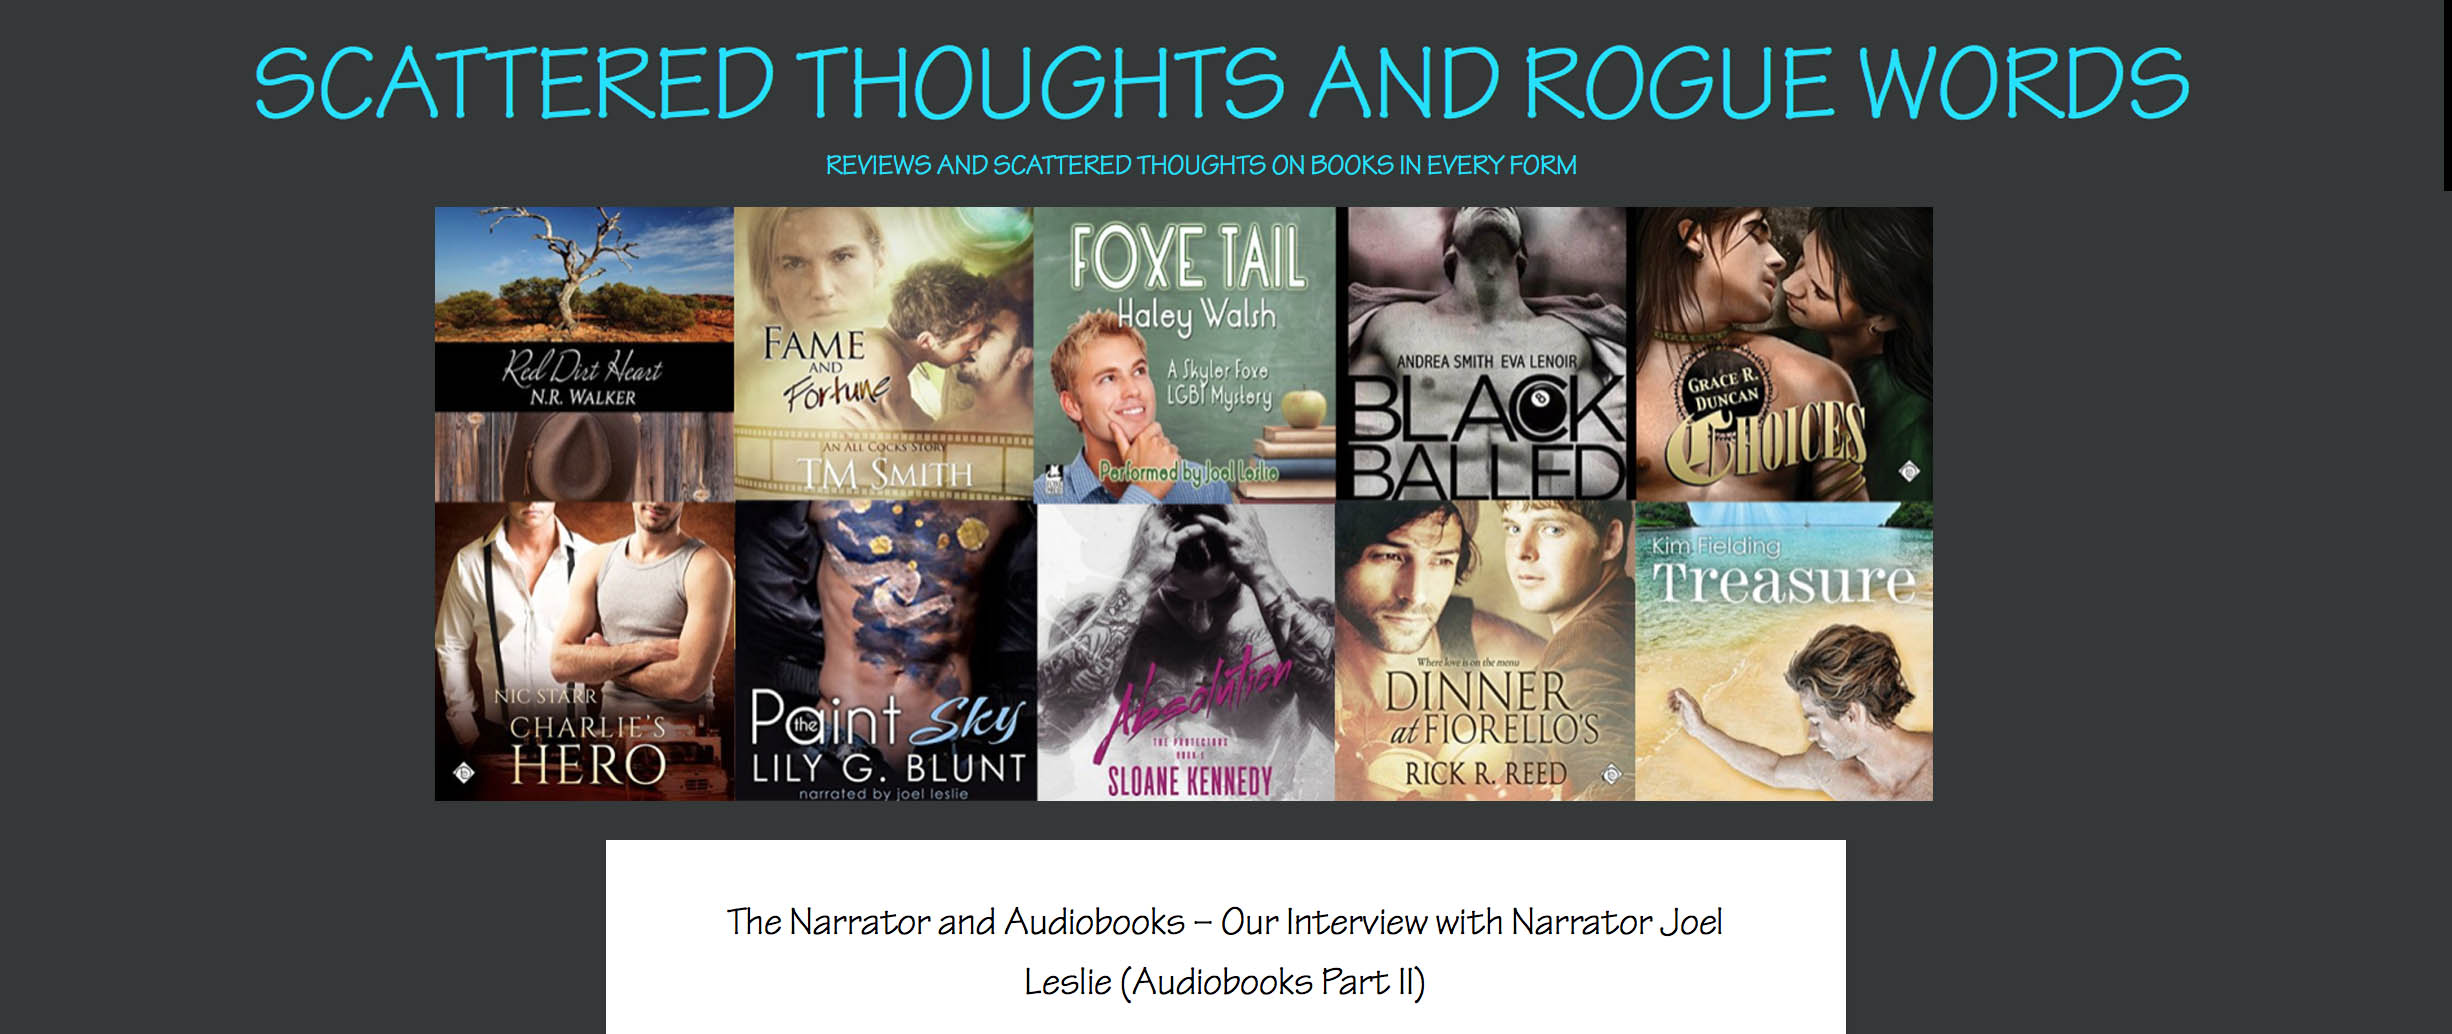 JOEL CHATS WITH M/M REVIEW BLOG SCATTERED THOUGHTS AND ROGUE WORDS